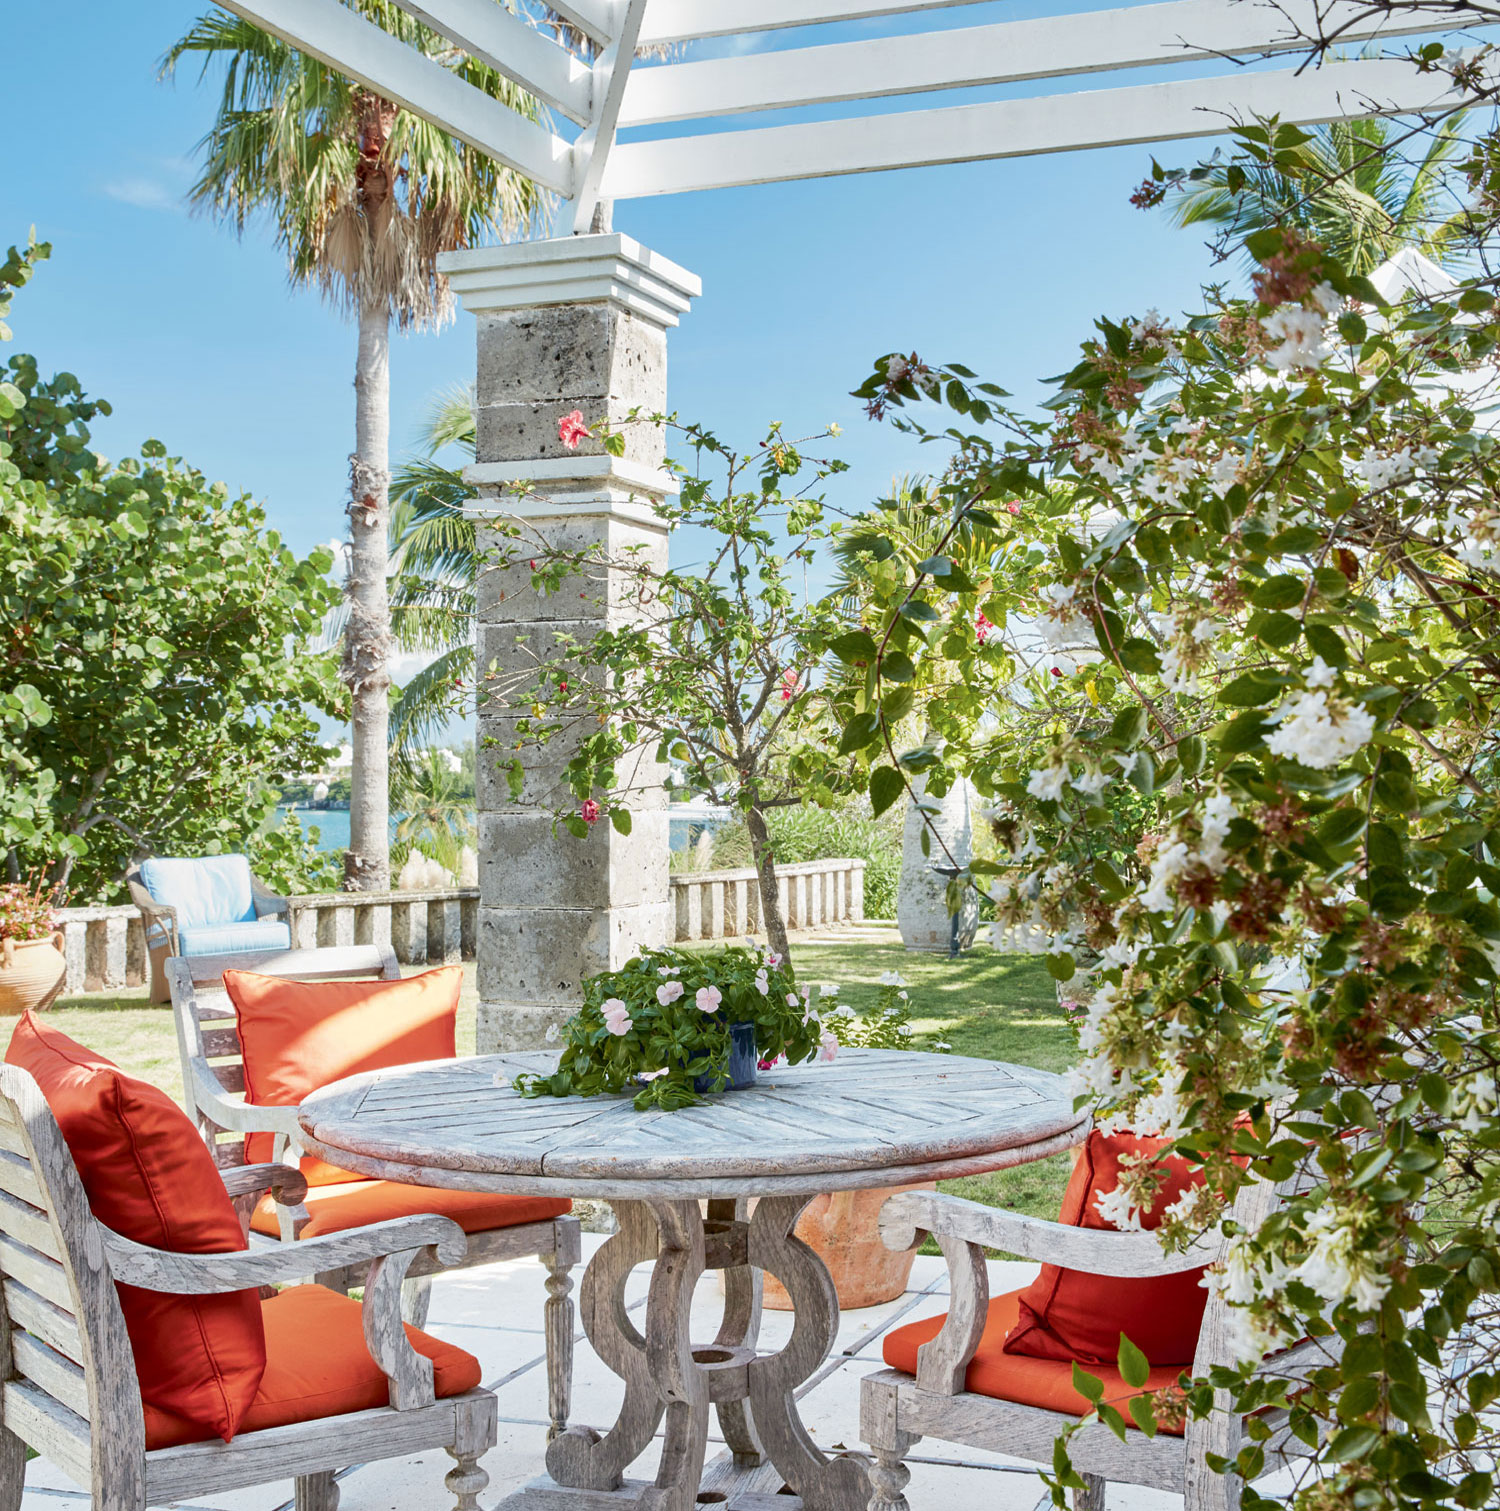 Peppered with patios, terraces, and private nooks, the grounds have been designed for the enjoyment of Bermuda's outdoor lifestyle.